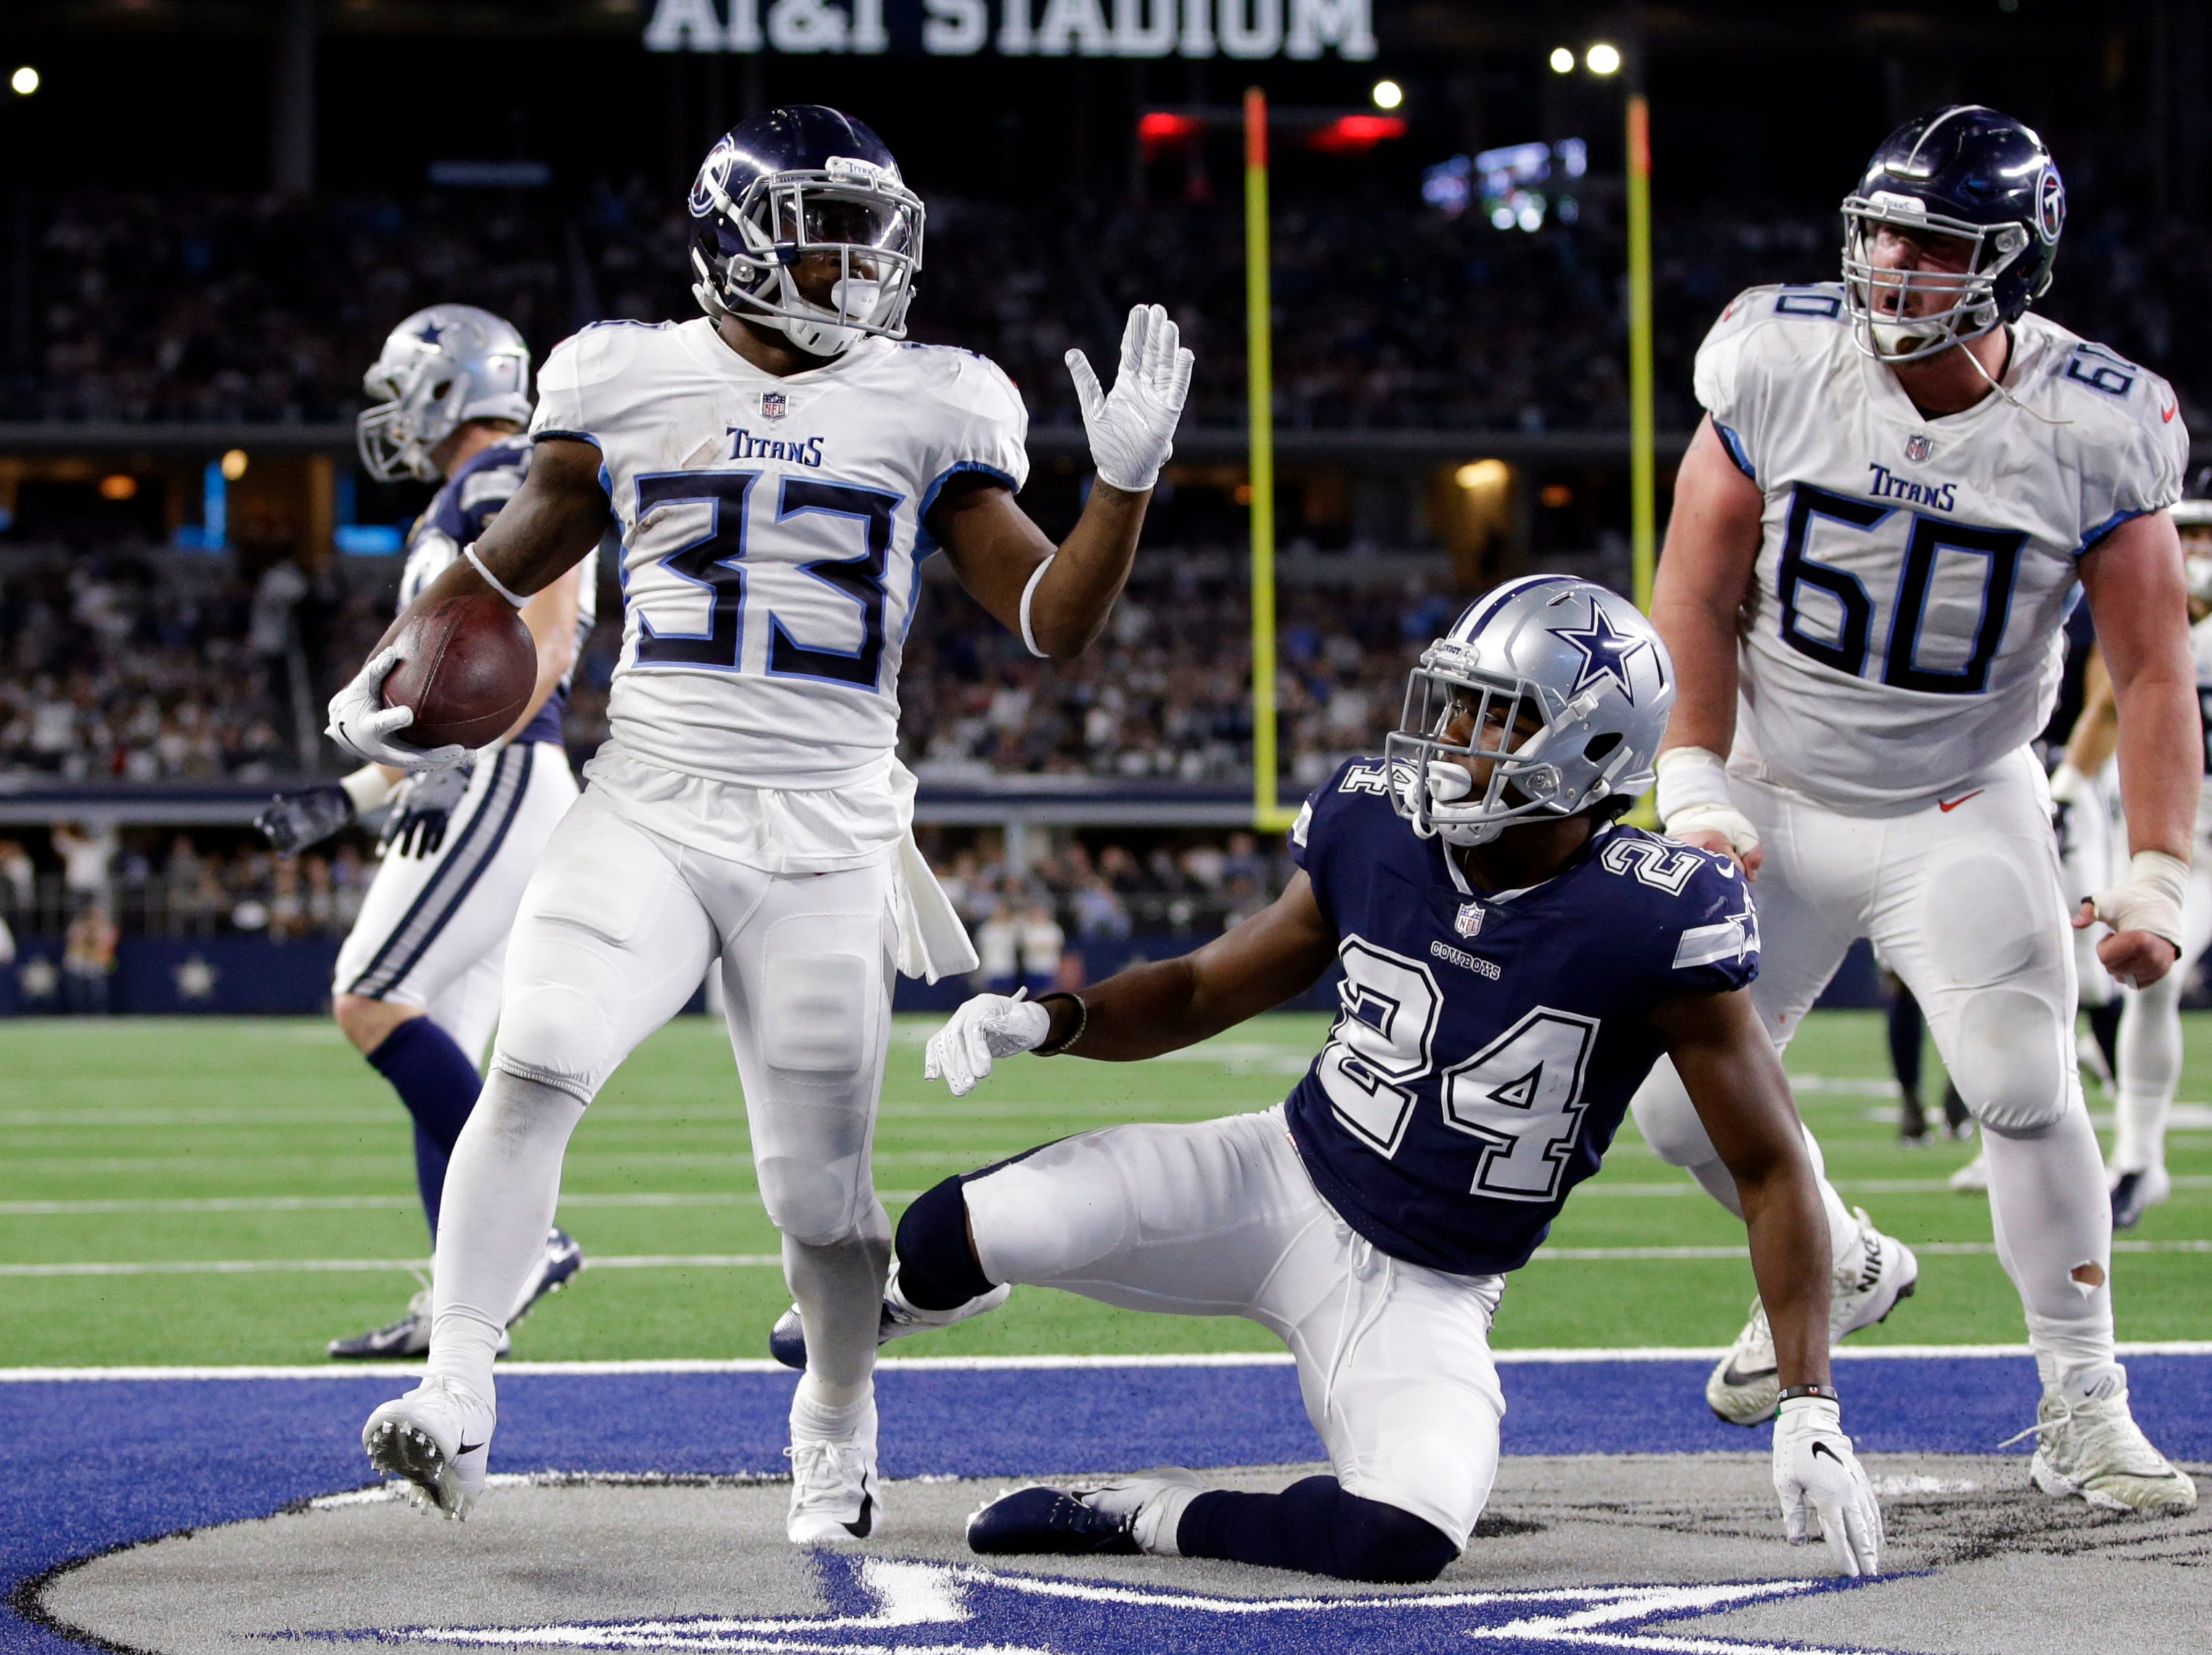 Nov 5, 2018; Arlington, TX, USA; Tennessee Titans running back Dion Lewis (33) scores a touchdown against Dallas Cowboys cornerback Chidobe Awuzie (24) in the second quarter at AT&T Stadium.